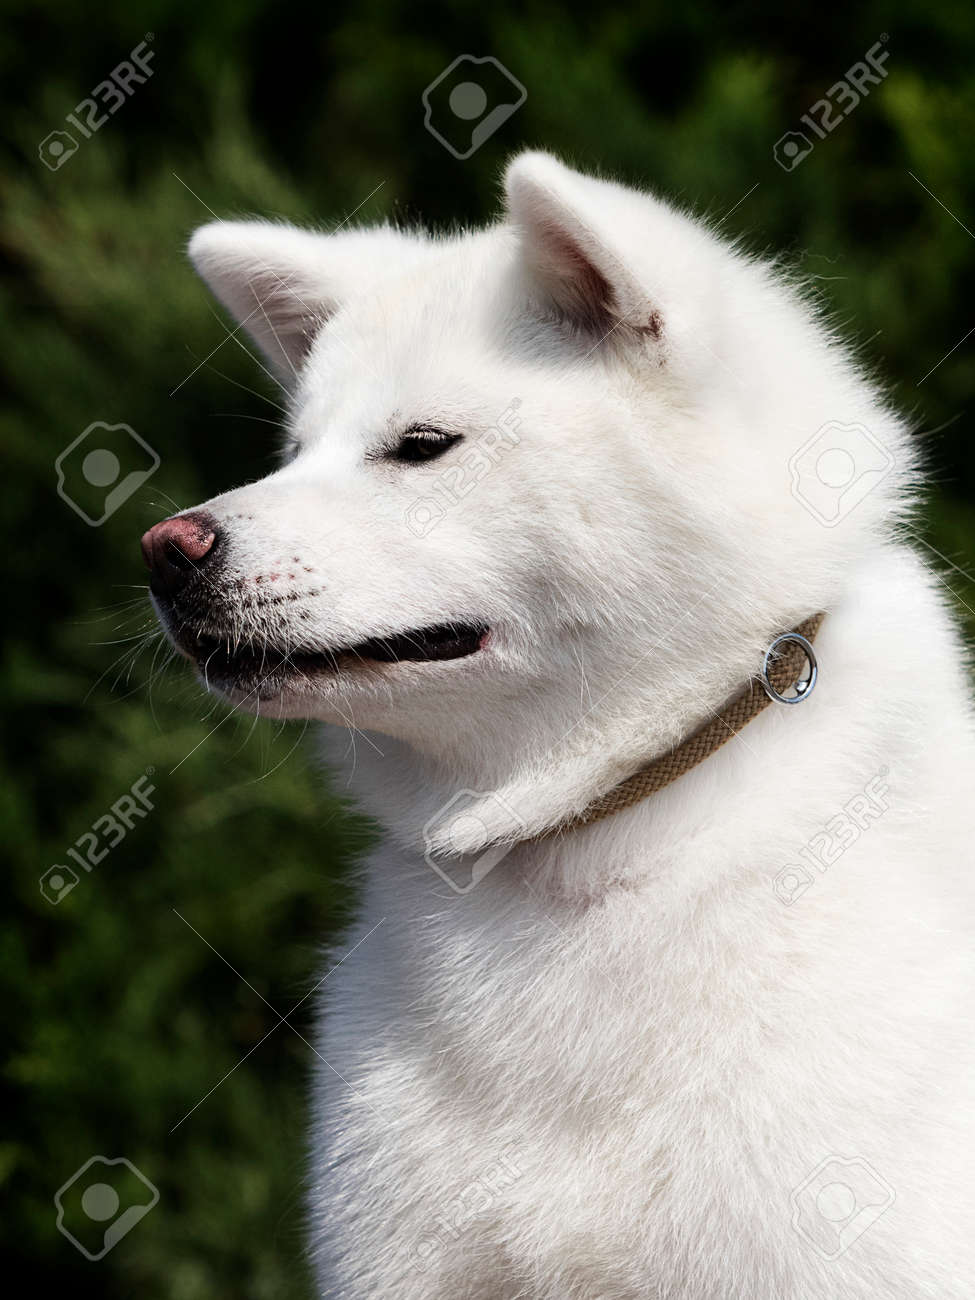 White Dog Breed Japanese Akita Inu Outdoors Stock Photo Picture And Royalty Free Image Image 127819839